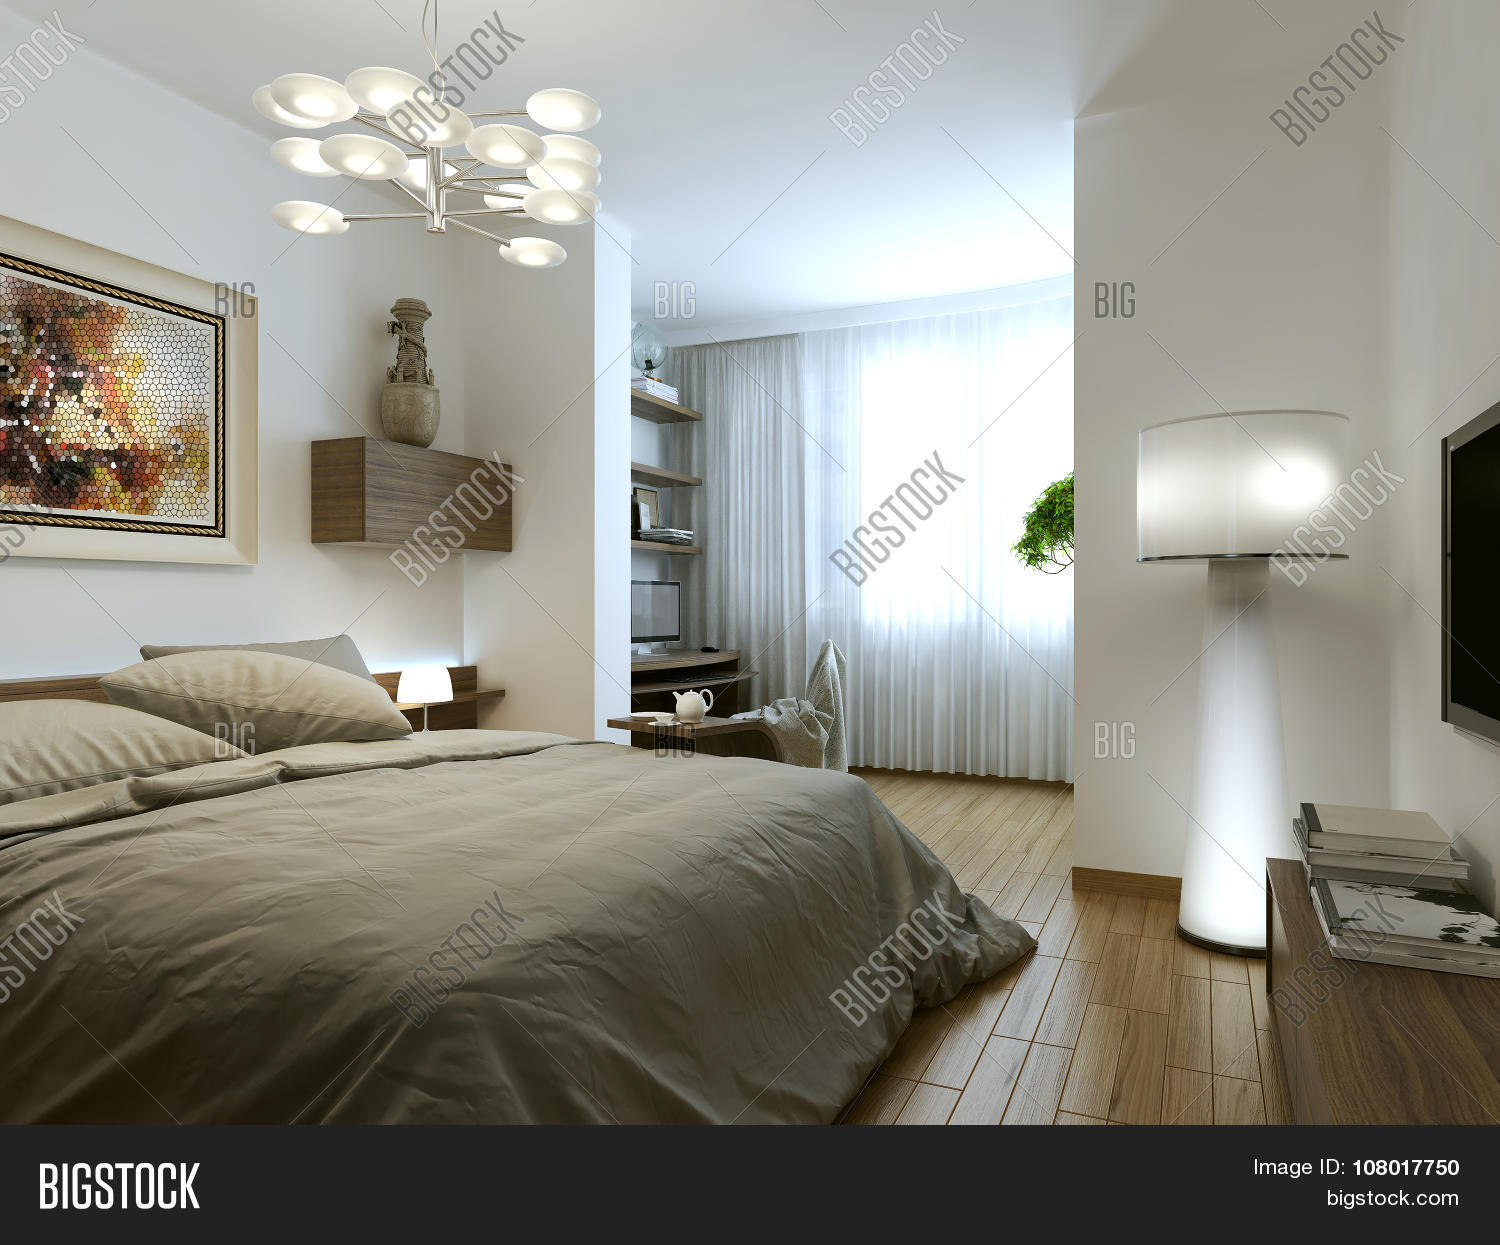 Bedroom minimalist interior image photo bigstock for Interior bedroom minimalist